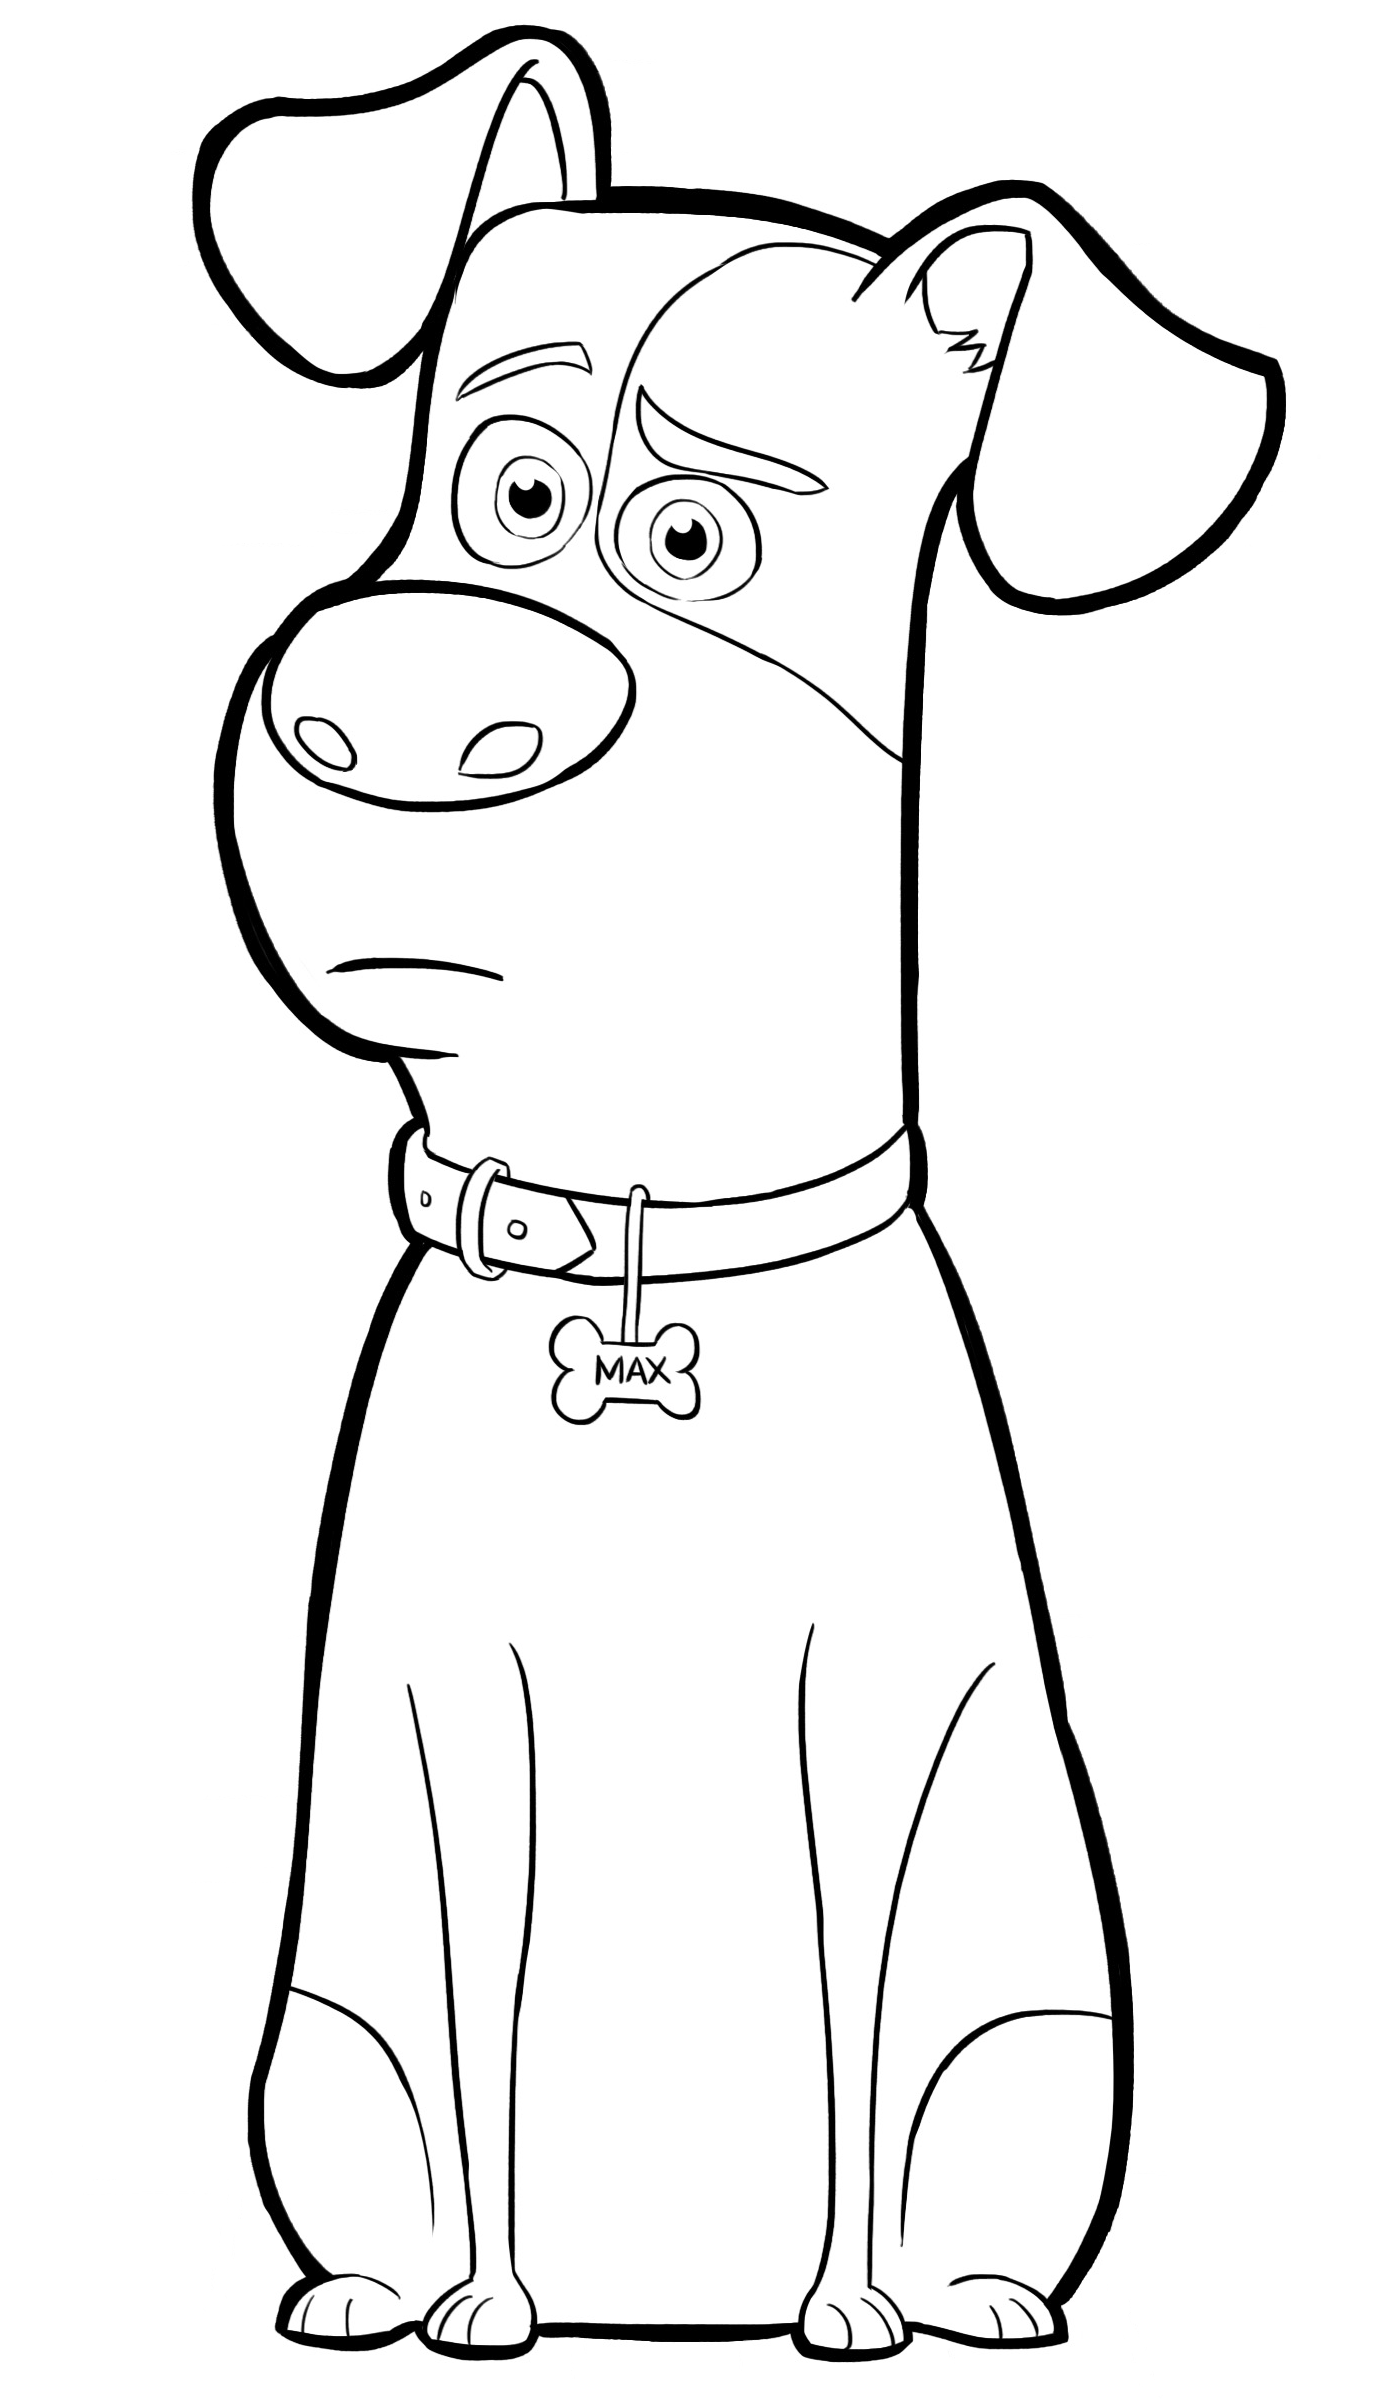 The secret life of pets coloring pages coloring home for Secret life of pets printable coloring pages